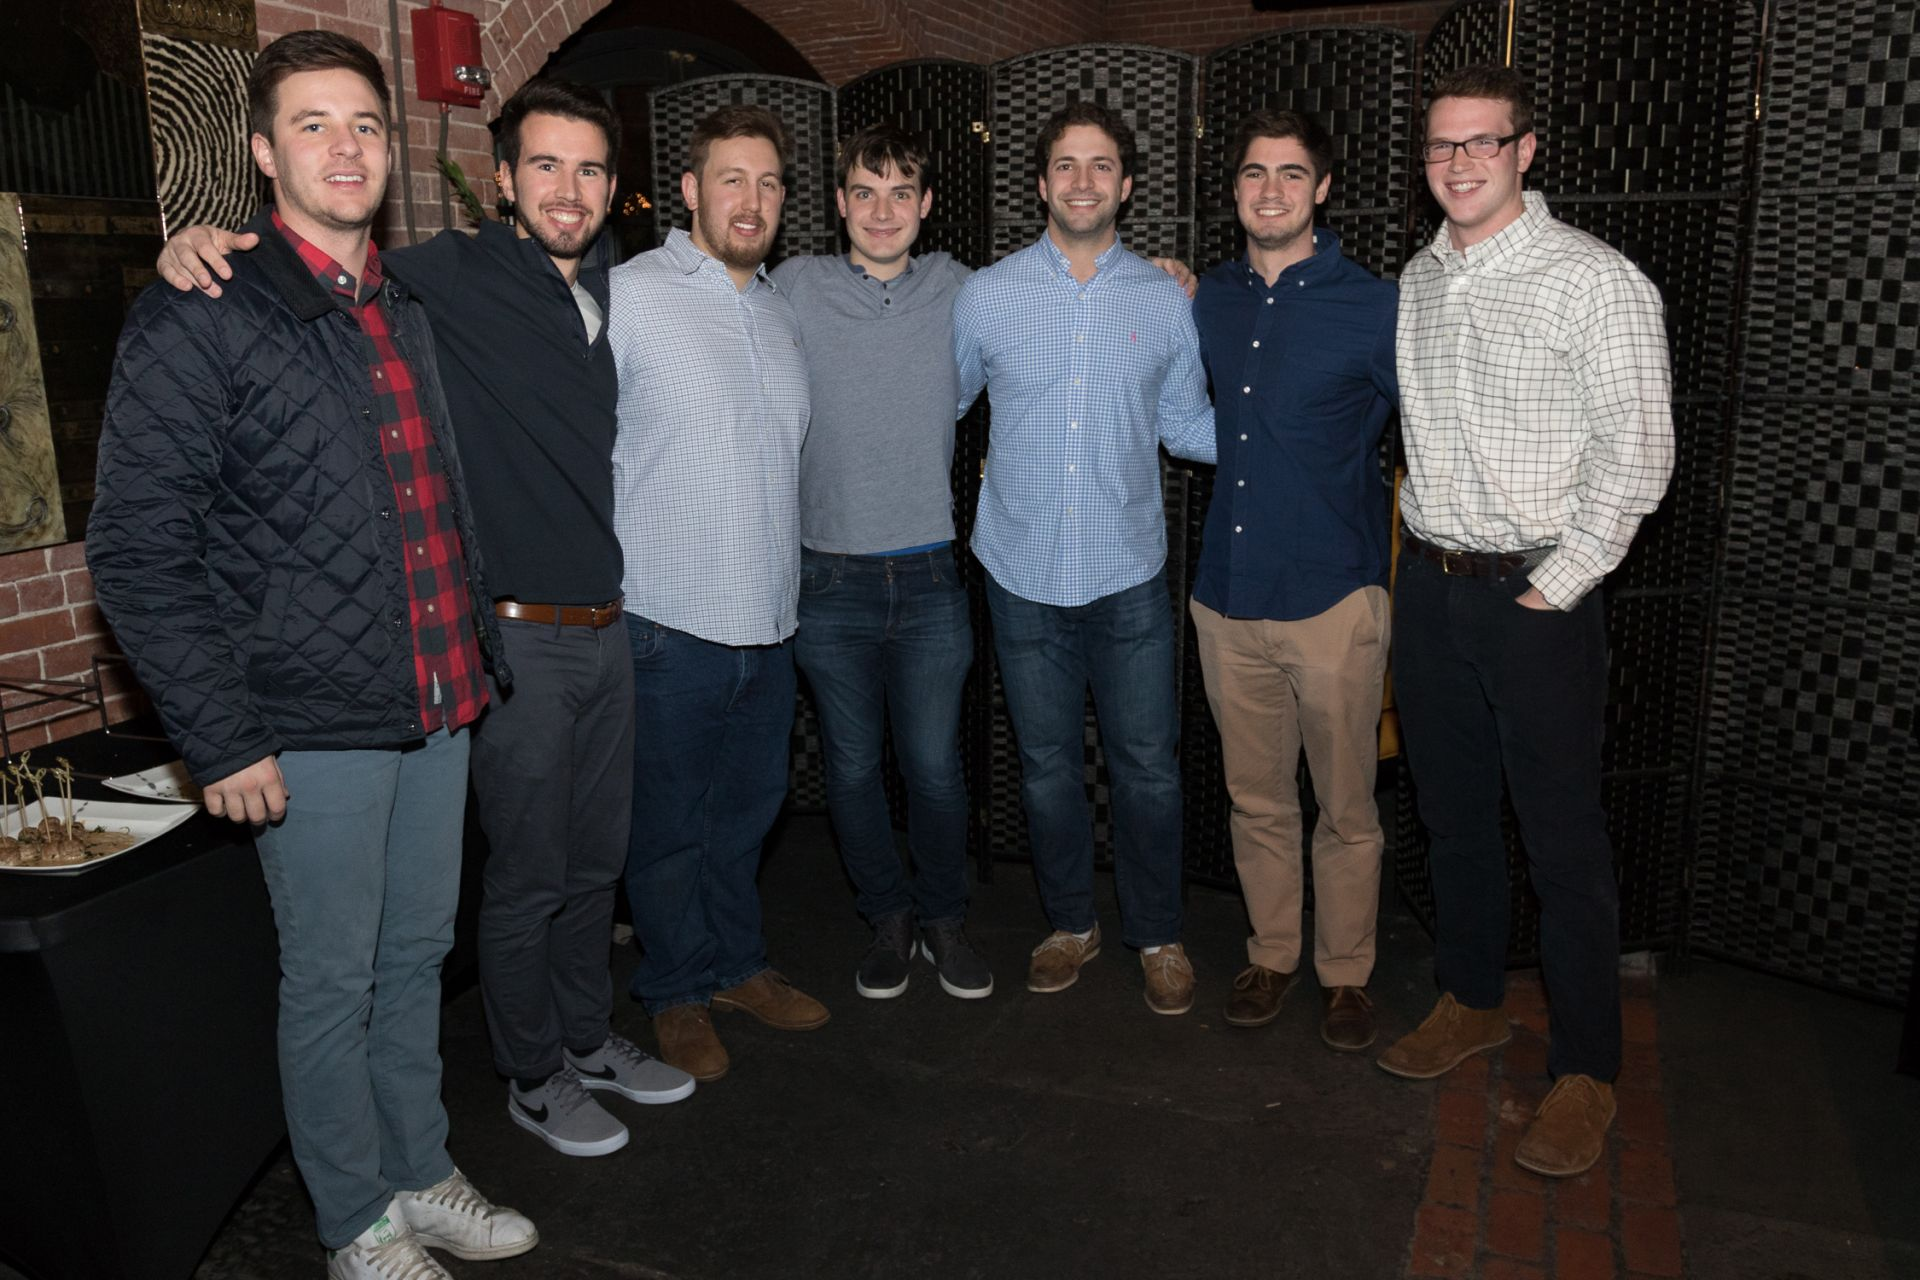 Recent Alumni Gathering at the Liberty Hotel, November 23, 2018 Colin Ward '15, Justin Grady '15, Robert Caputo '15, Chris Bracken '15, Benny Wanger '15, Evan Chaletzky '15, and Mack Rush '15.